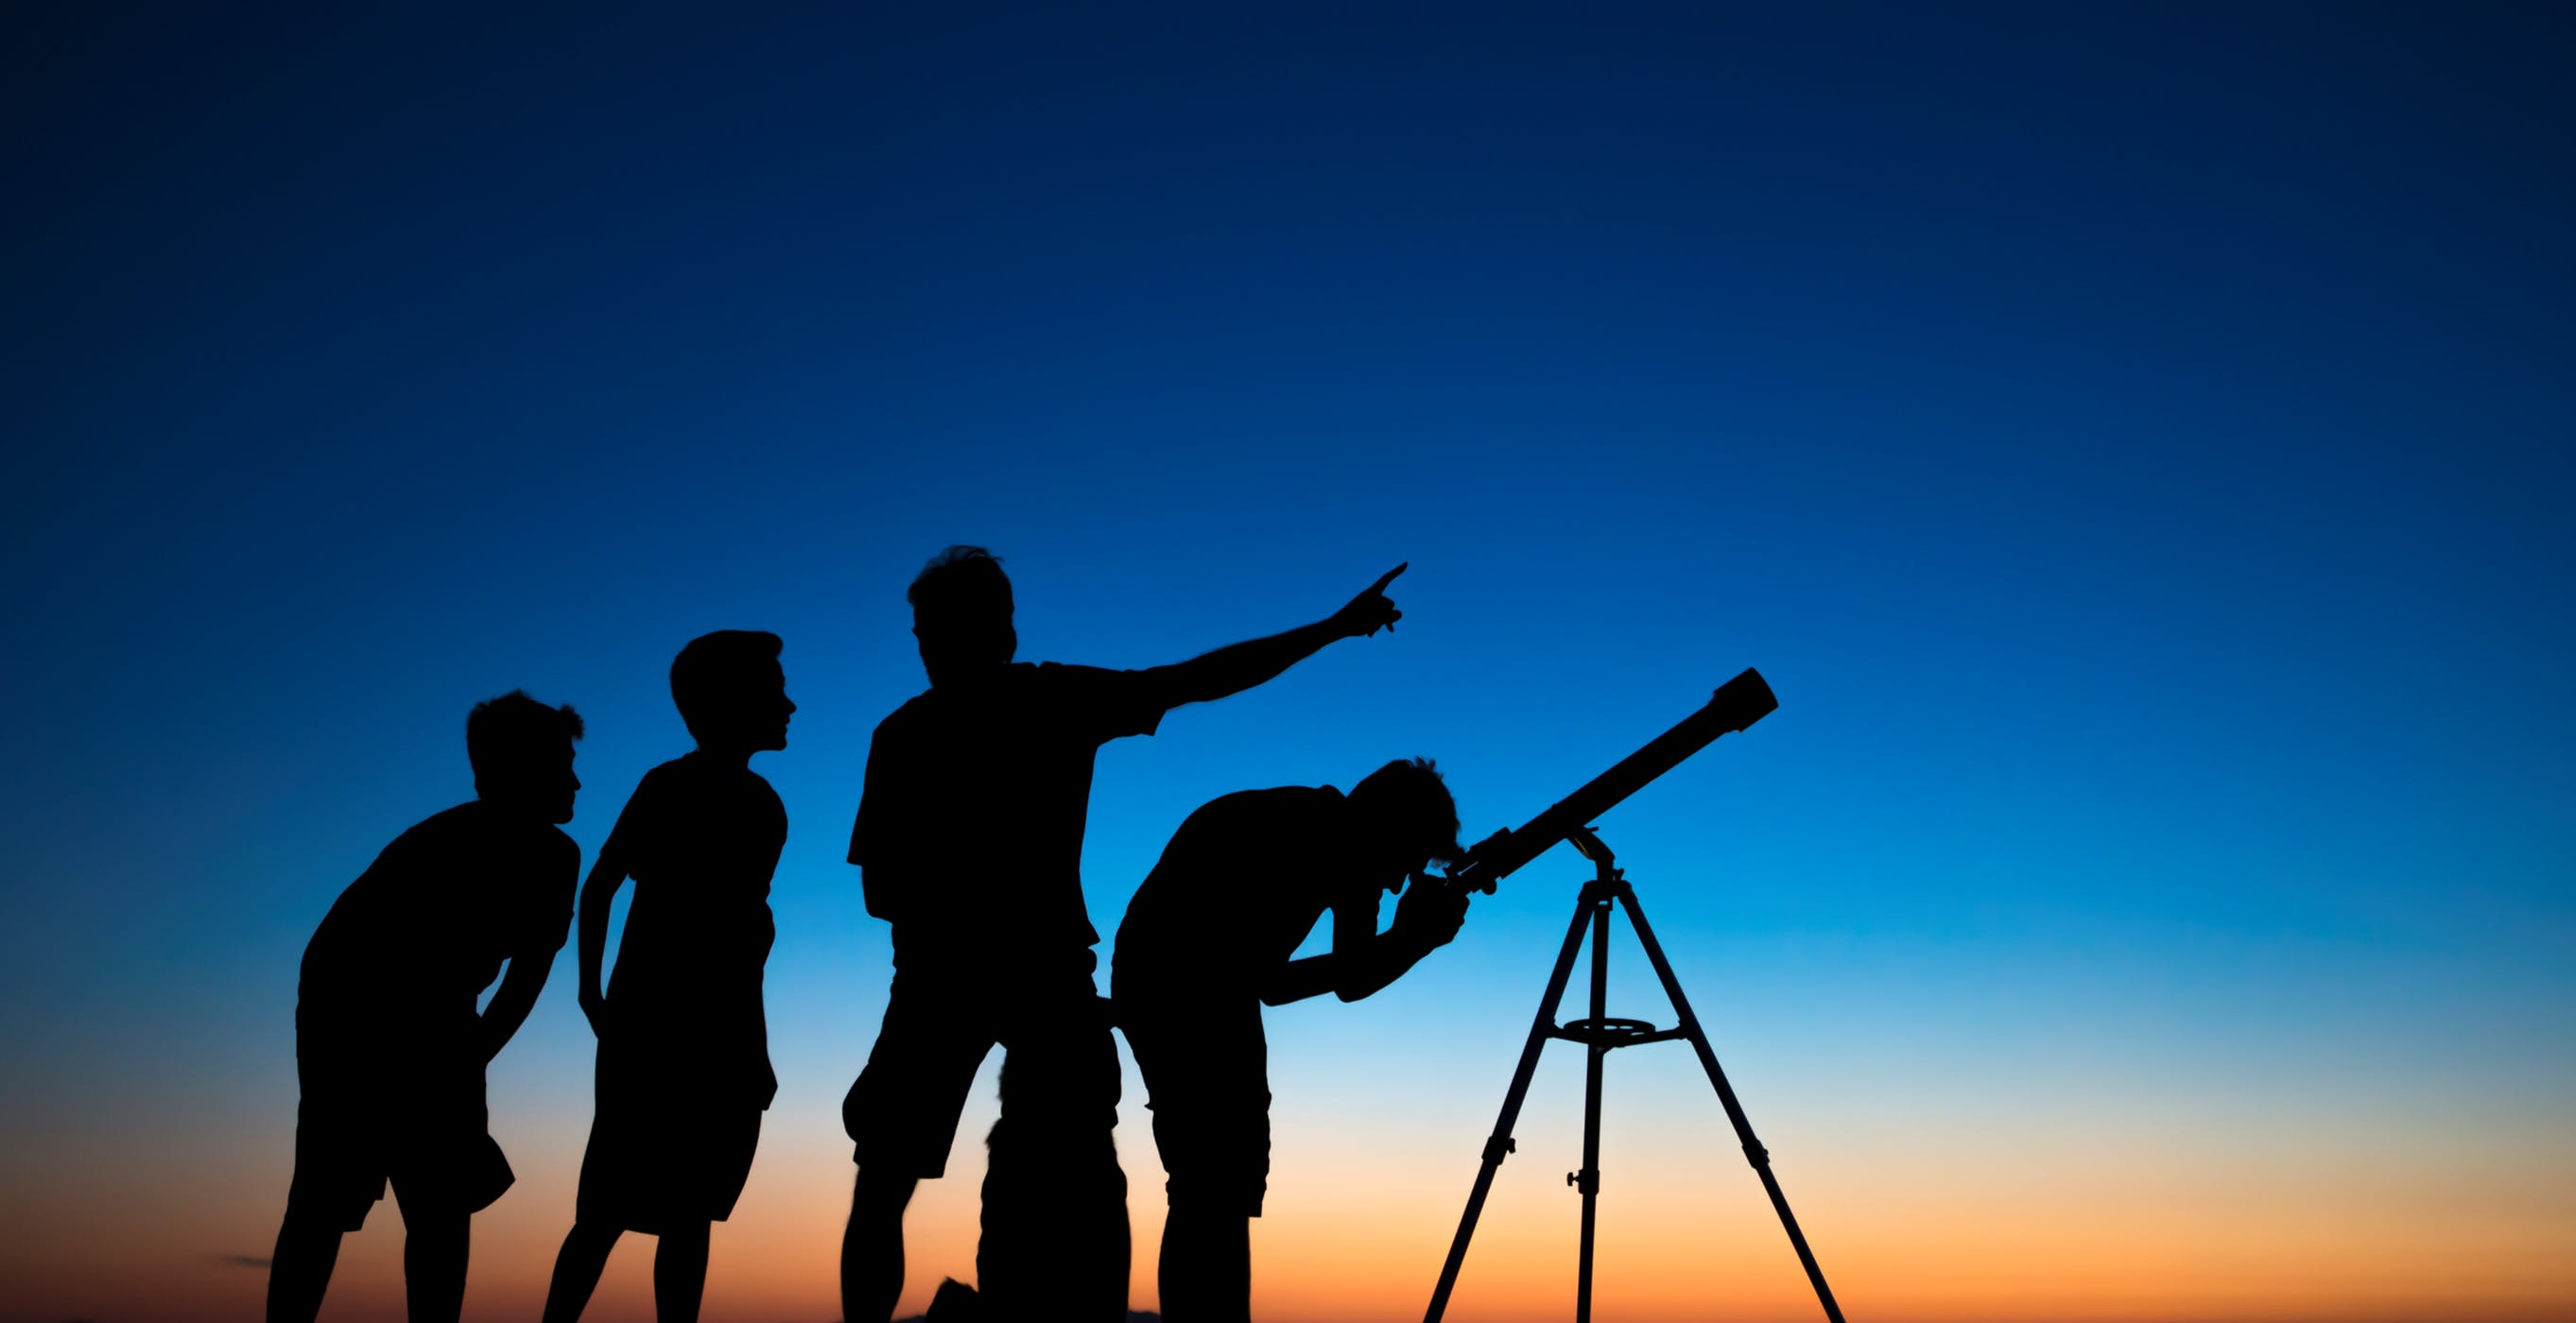 Skywatching at Dix Park - International Observe the Moon Night!